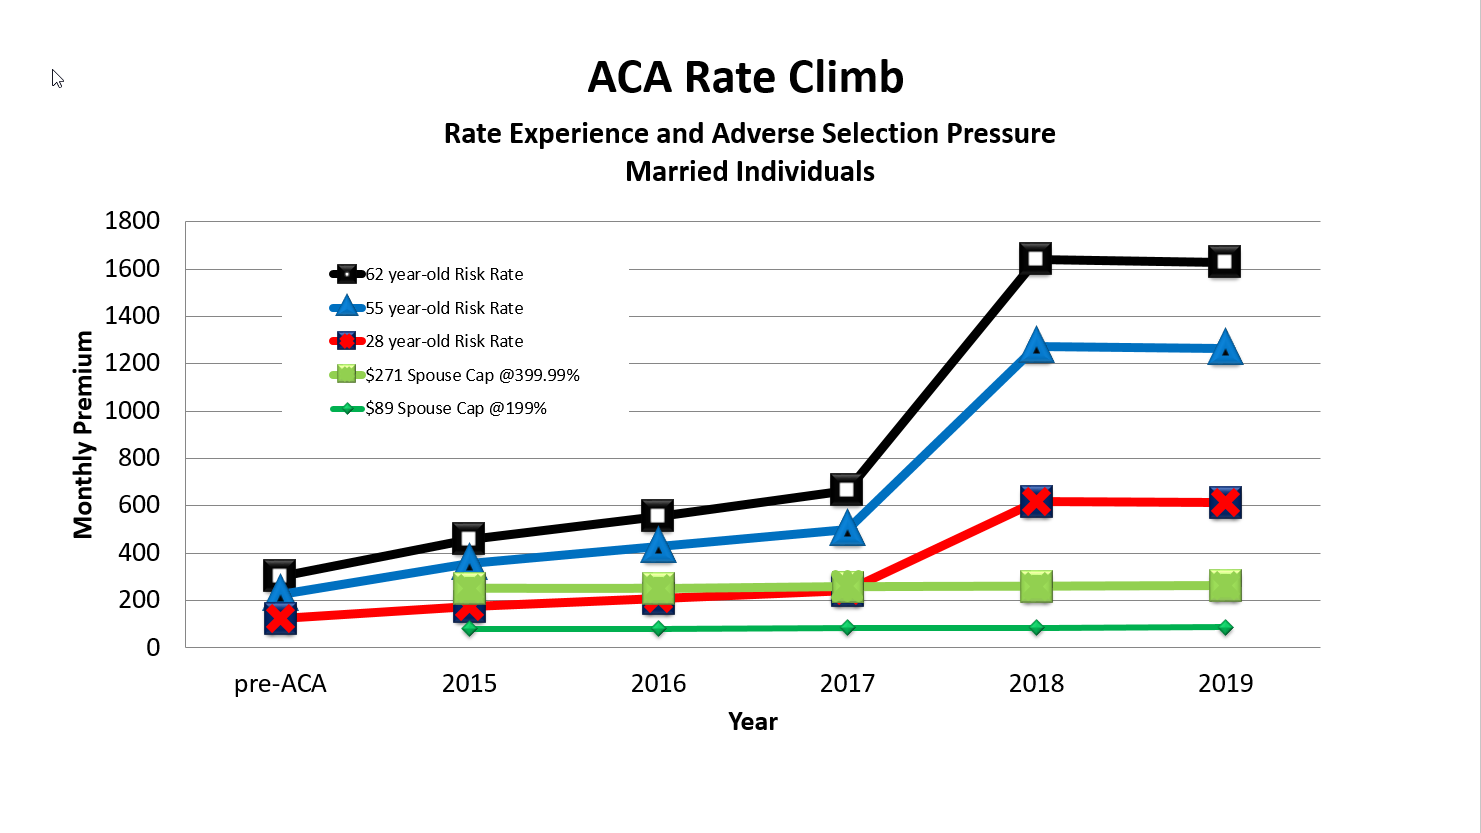 ACA Rate Climb Married